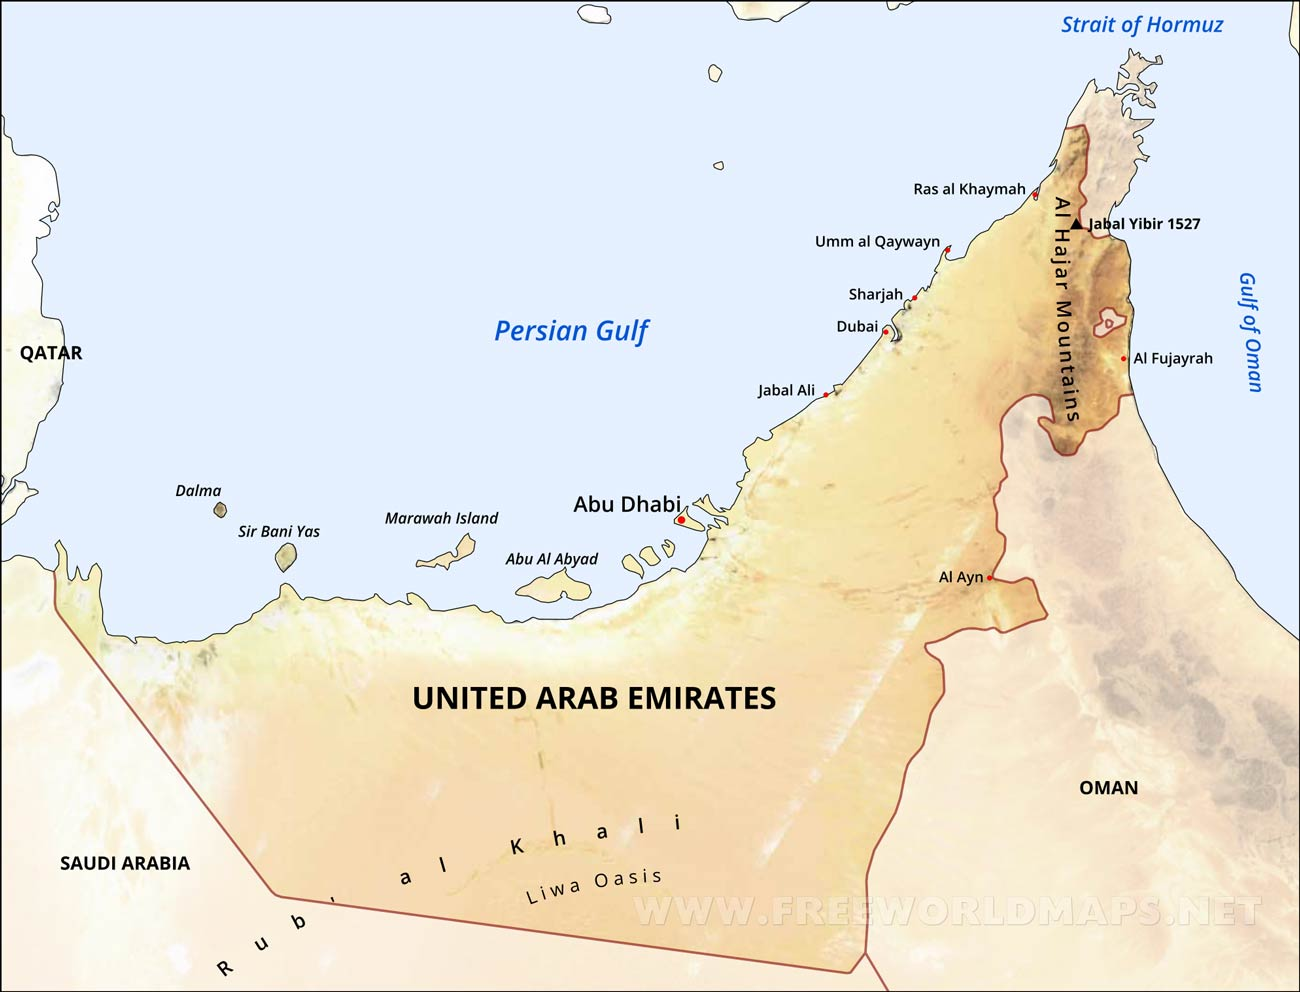 map of algeria, middle east, ras al-khaimah, burj al-arab, united states of america, map of bhutan, map of sudan, map of malaysia, arabian peninsula, persian gulf, map of iran, map of isle of man, map of ethiopia, map of dubai and surrounding countries, map of netherlands, abu dhabi, burj khalifa, map of montenegro, saudi arabia, map of singapore, map of pakistan, map of hungary, map of oman, map of venezuela, map of bosnia, map of bahrain, map of israel, map of armenia, map of denmark, on map of the emirates